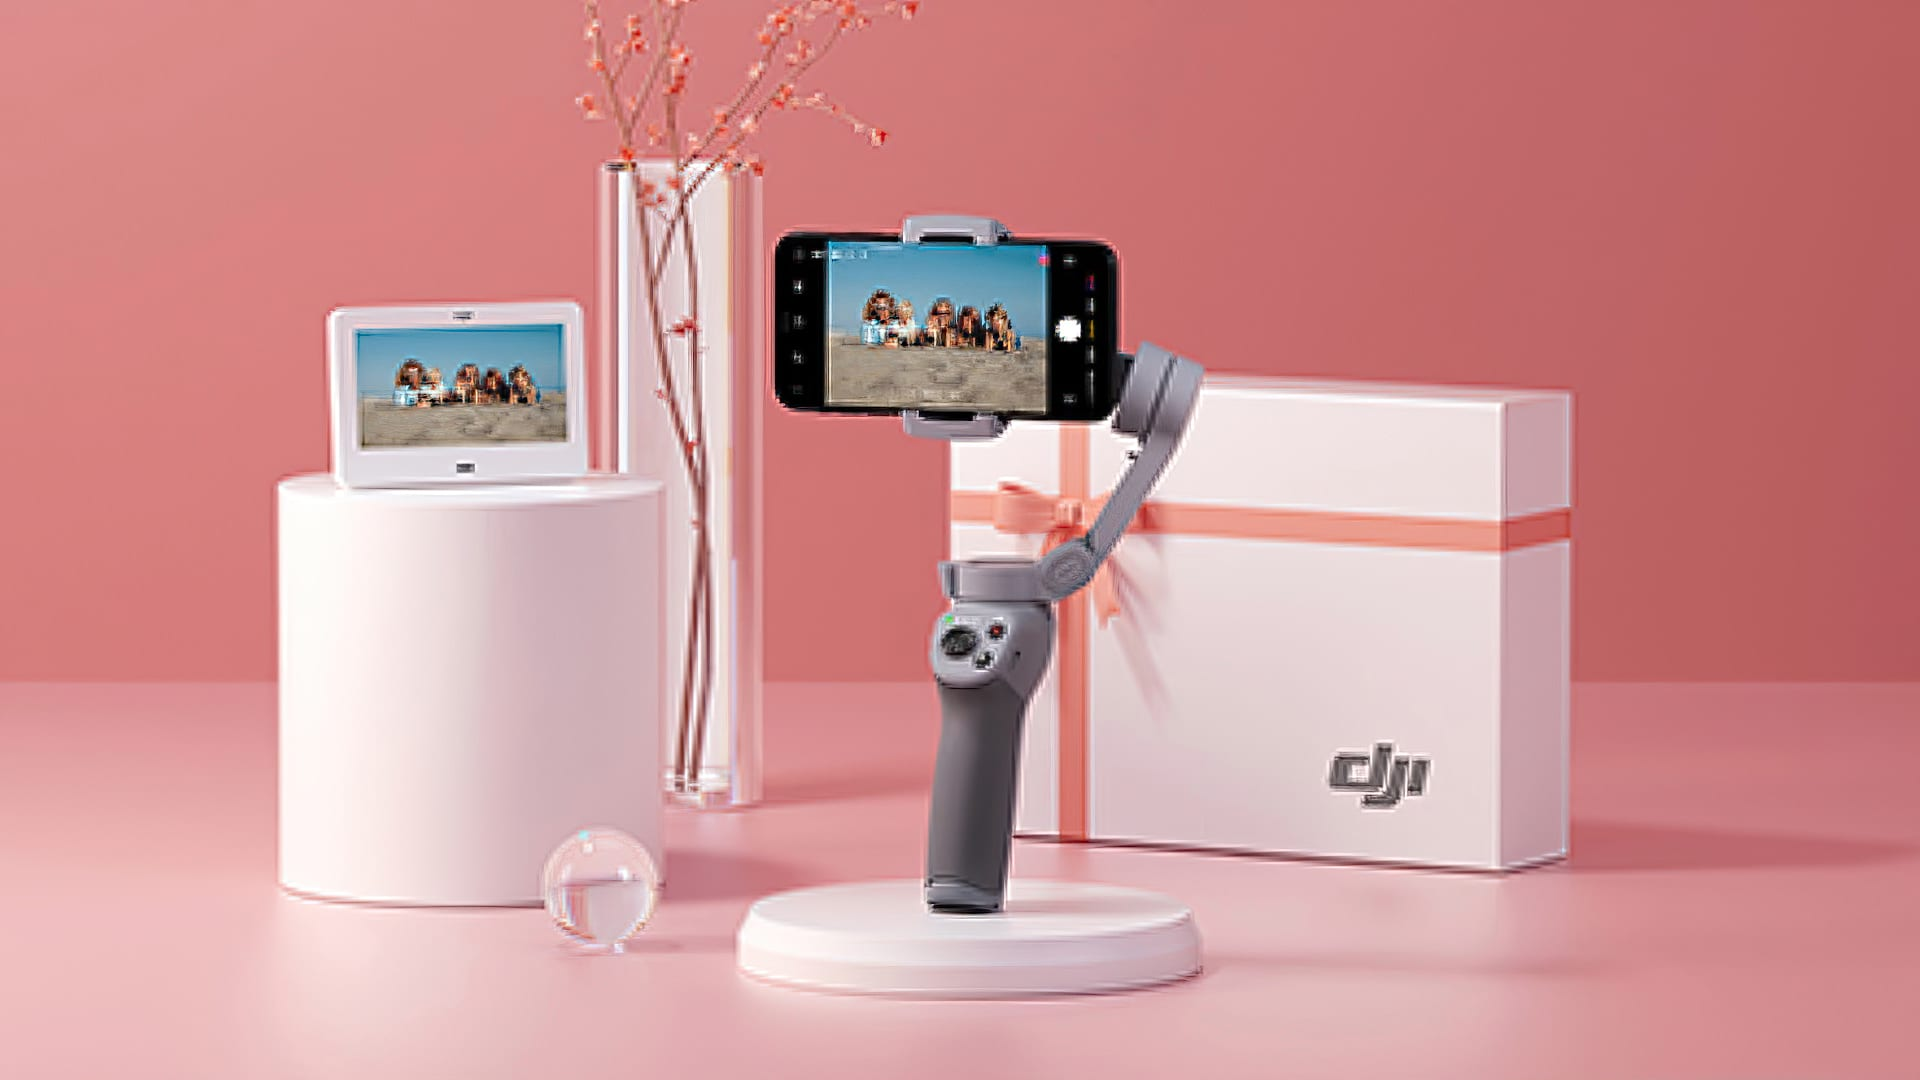 DJI Mother's Day promotion